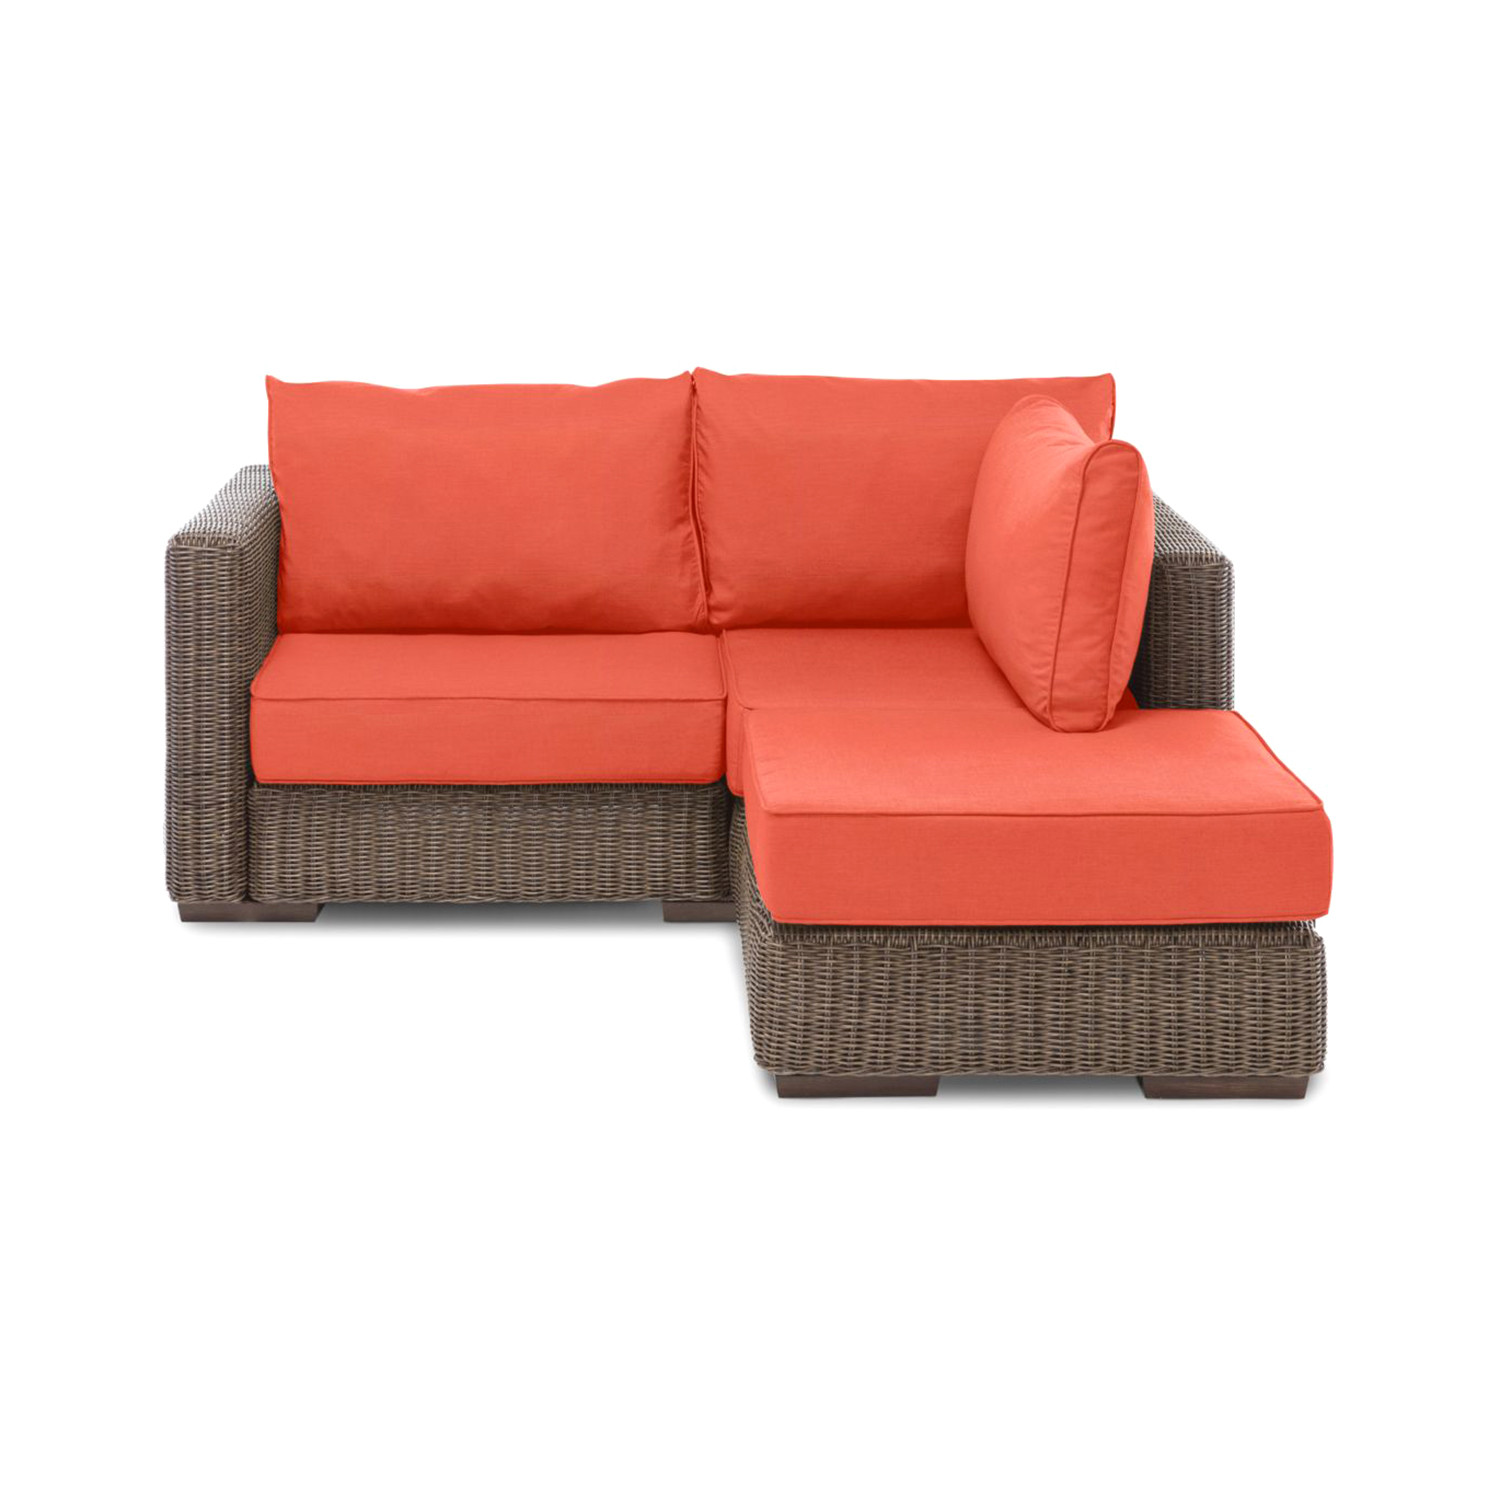 color loveseats the park wicker your custom included lounge b furniture patio hampton white outdoors loveseat own bay small cushions meadows outdoor with compressed choose n